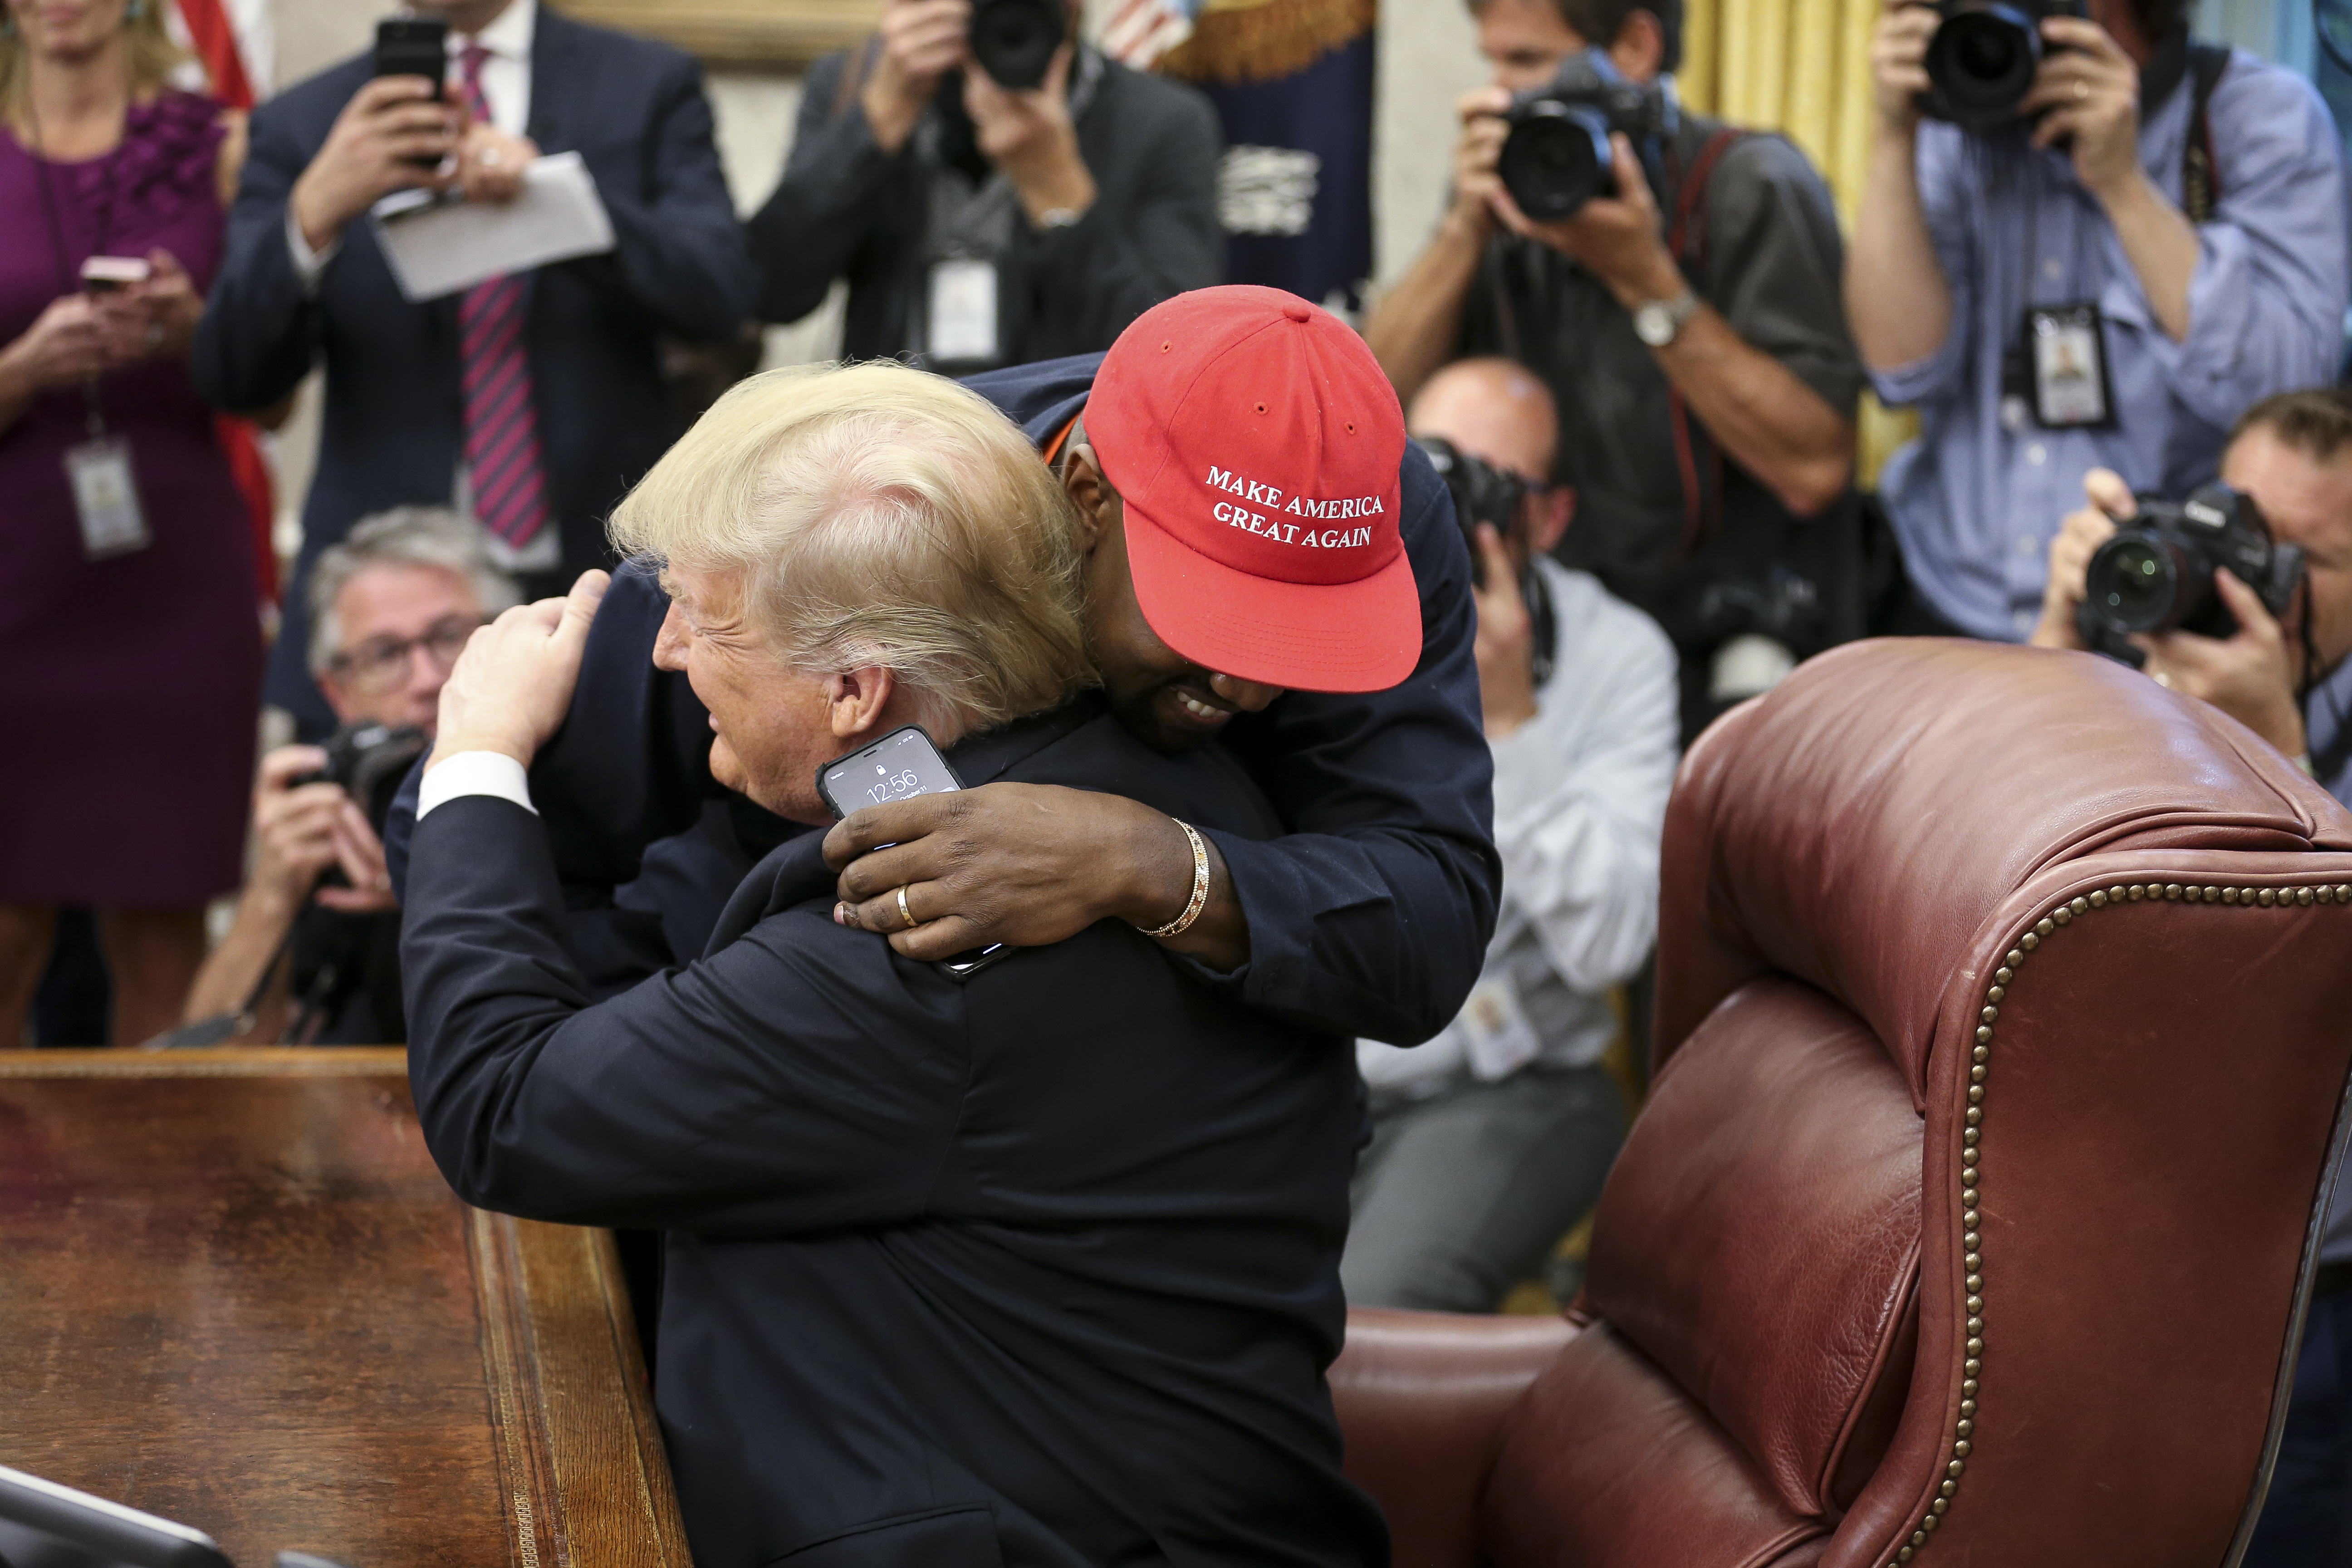 WASHINGTON, DC - OCTOBER 11: (AFP OUT) Rapper Kanye West hugs U.S. President Donald Trump during a meeting in the Oval office of the White House on October 11, 2018 in Washington, DC. (Photo by Oliver Contreras - Pool/Getty Images)